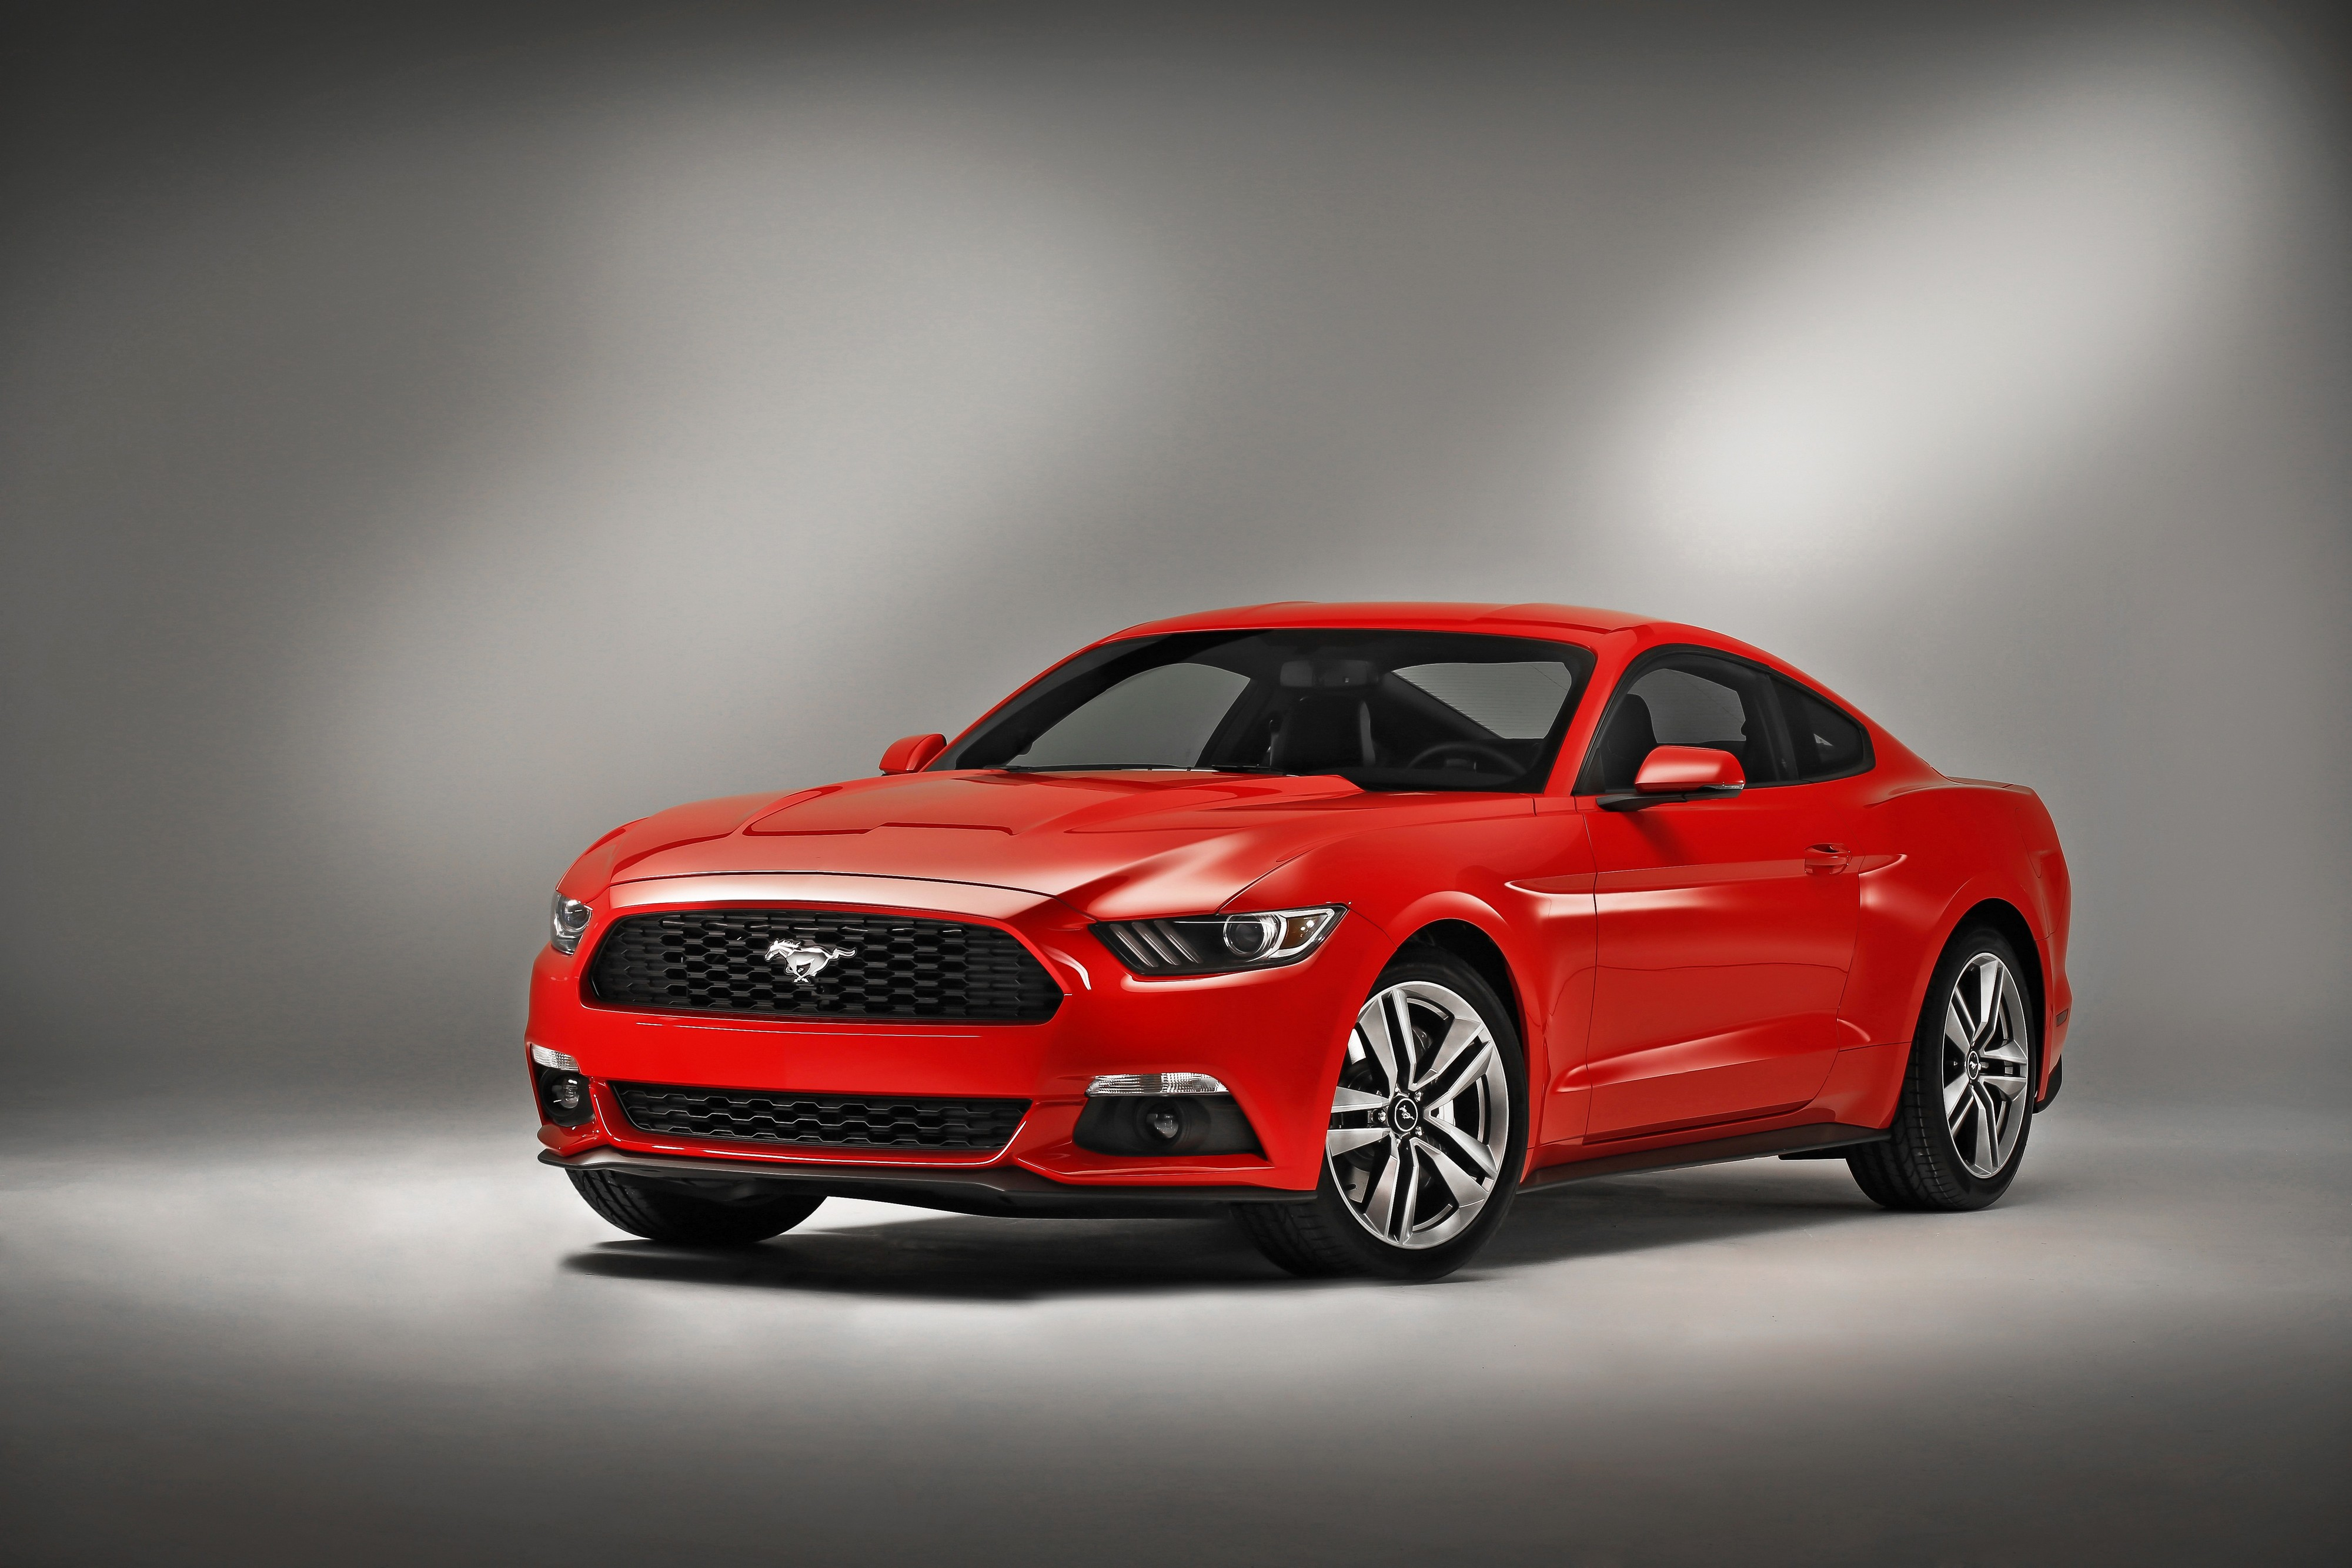 2019 Ford Mustang T 5 photo - 1